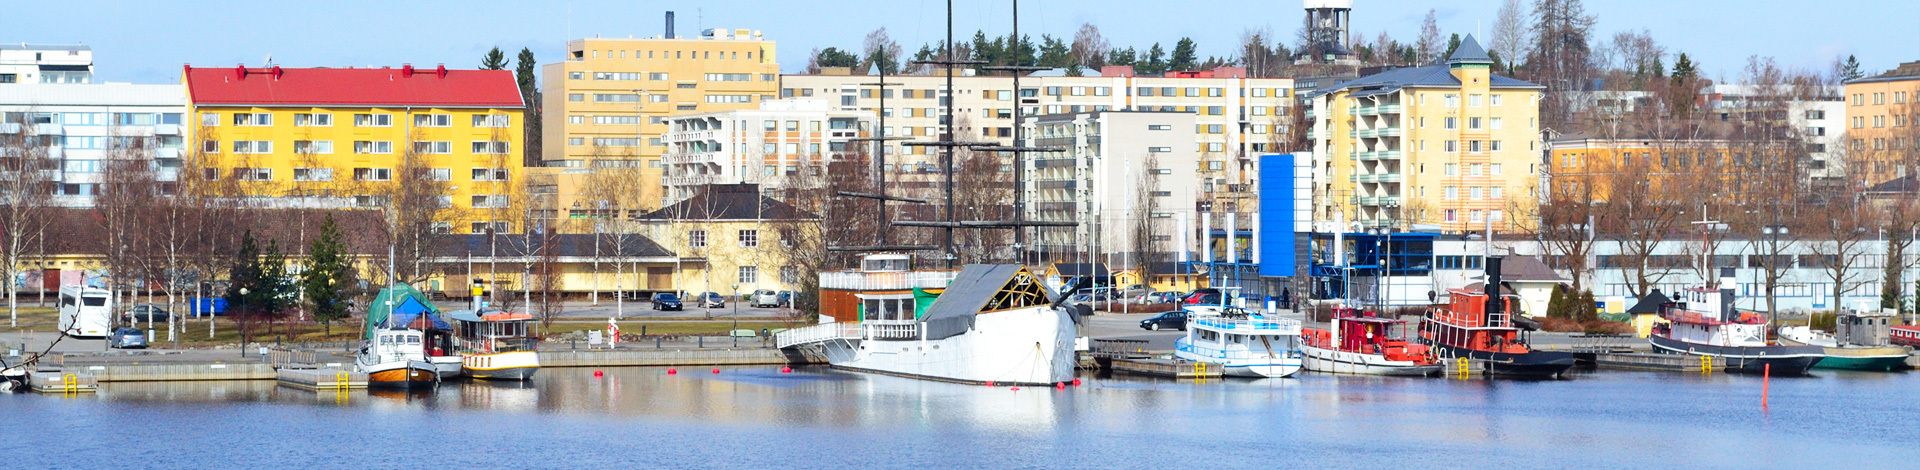 View of Mikkeli